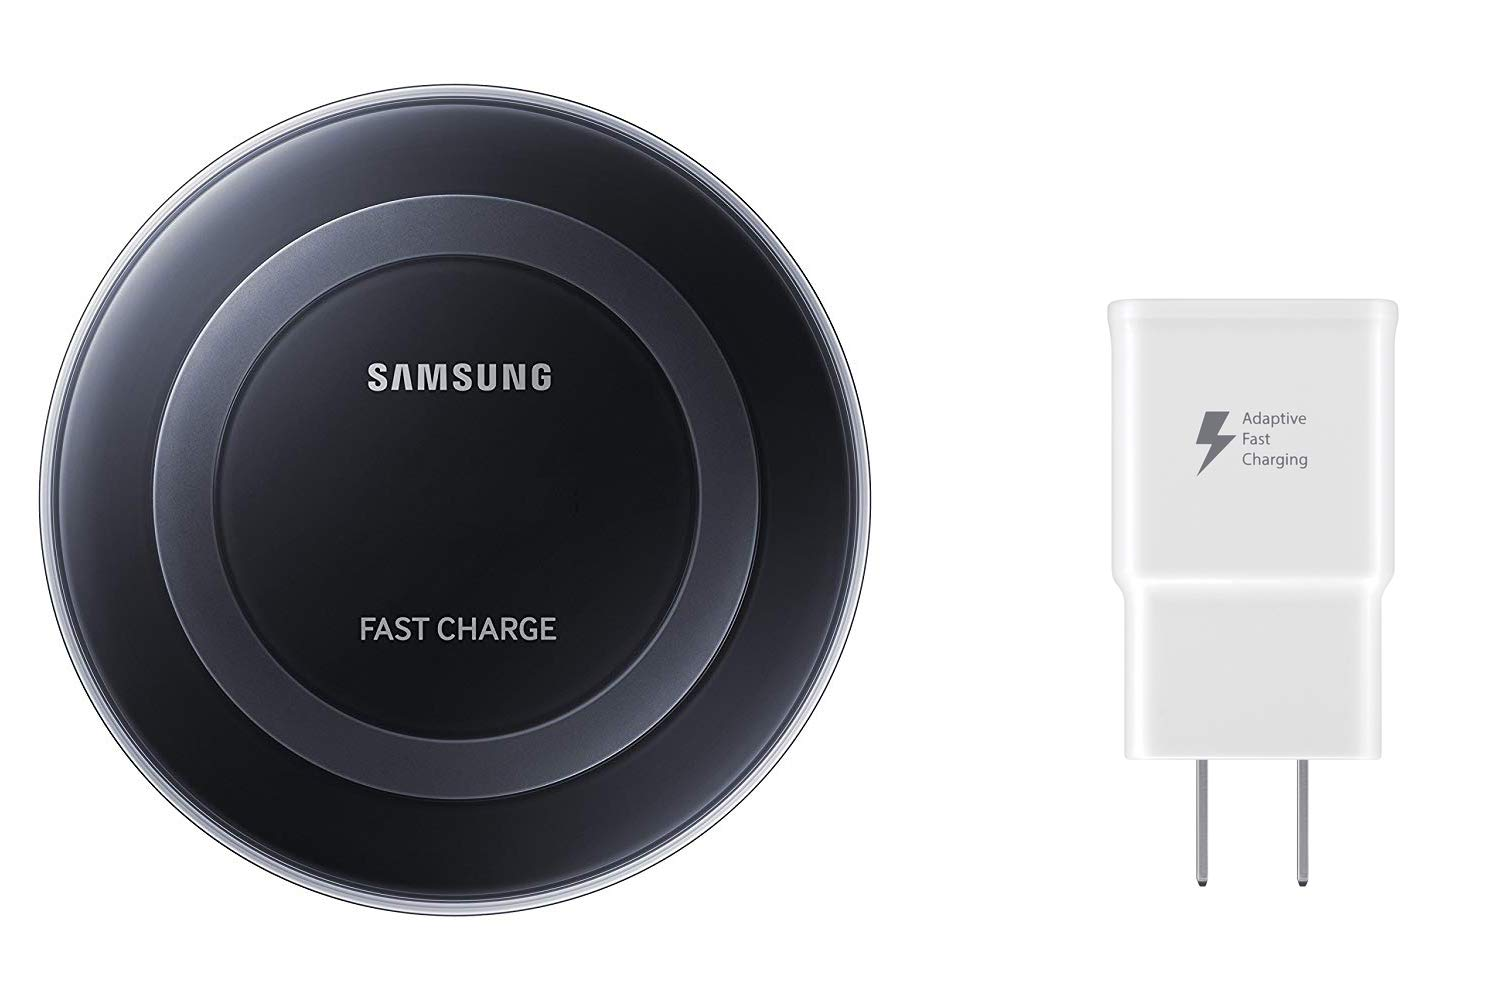 Samsung Qi Certified Fast Charge Wireless Charging Pad with 2A Wall Charger -Supports wireless charging on Qi compatible smartphones including the Samsung Galaxy S8, S8+, Note 8, Apple iPhone 8, iPhone 8 Plus, and iPhone X (US Version) - Black by Samsung